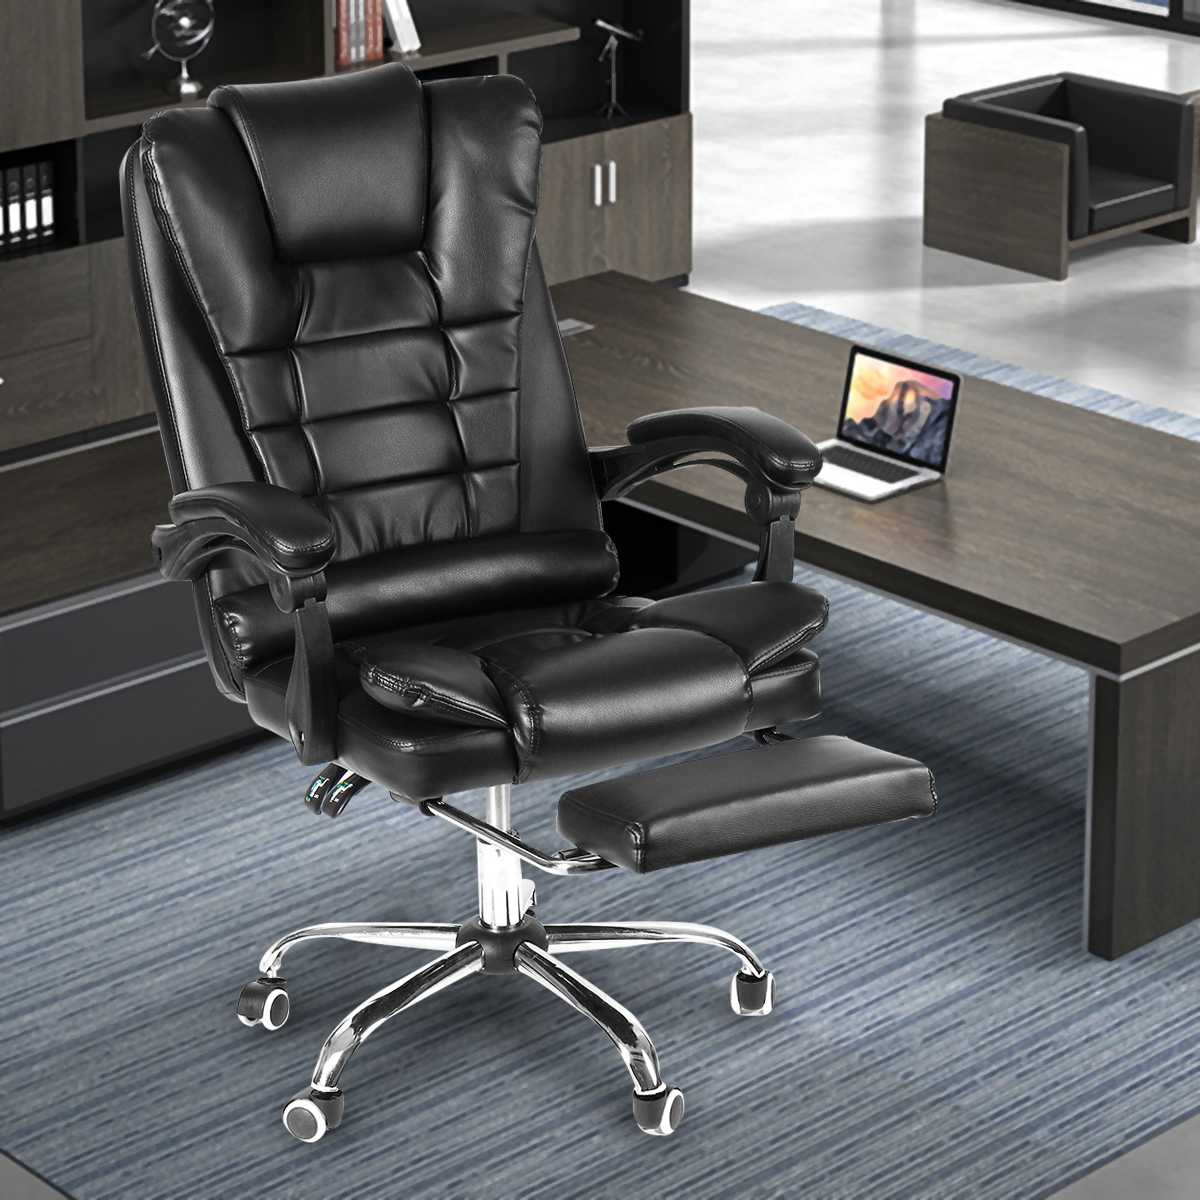 Reclining Office Chair Adjustable Rotating Lift PU Leather Computer Gaming Chair Armchair With Footrest For Home Furniture